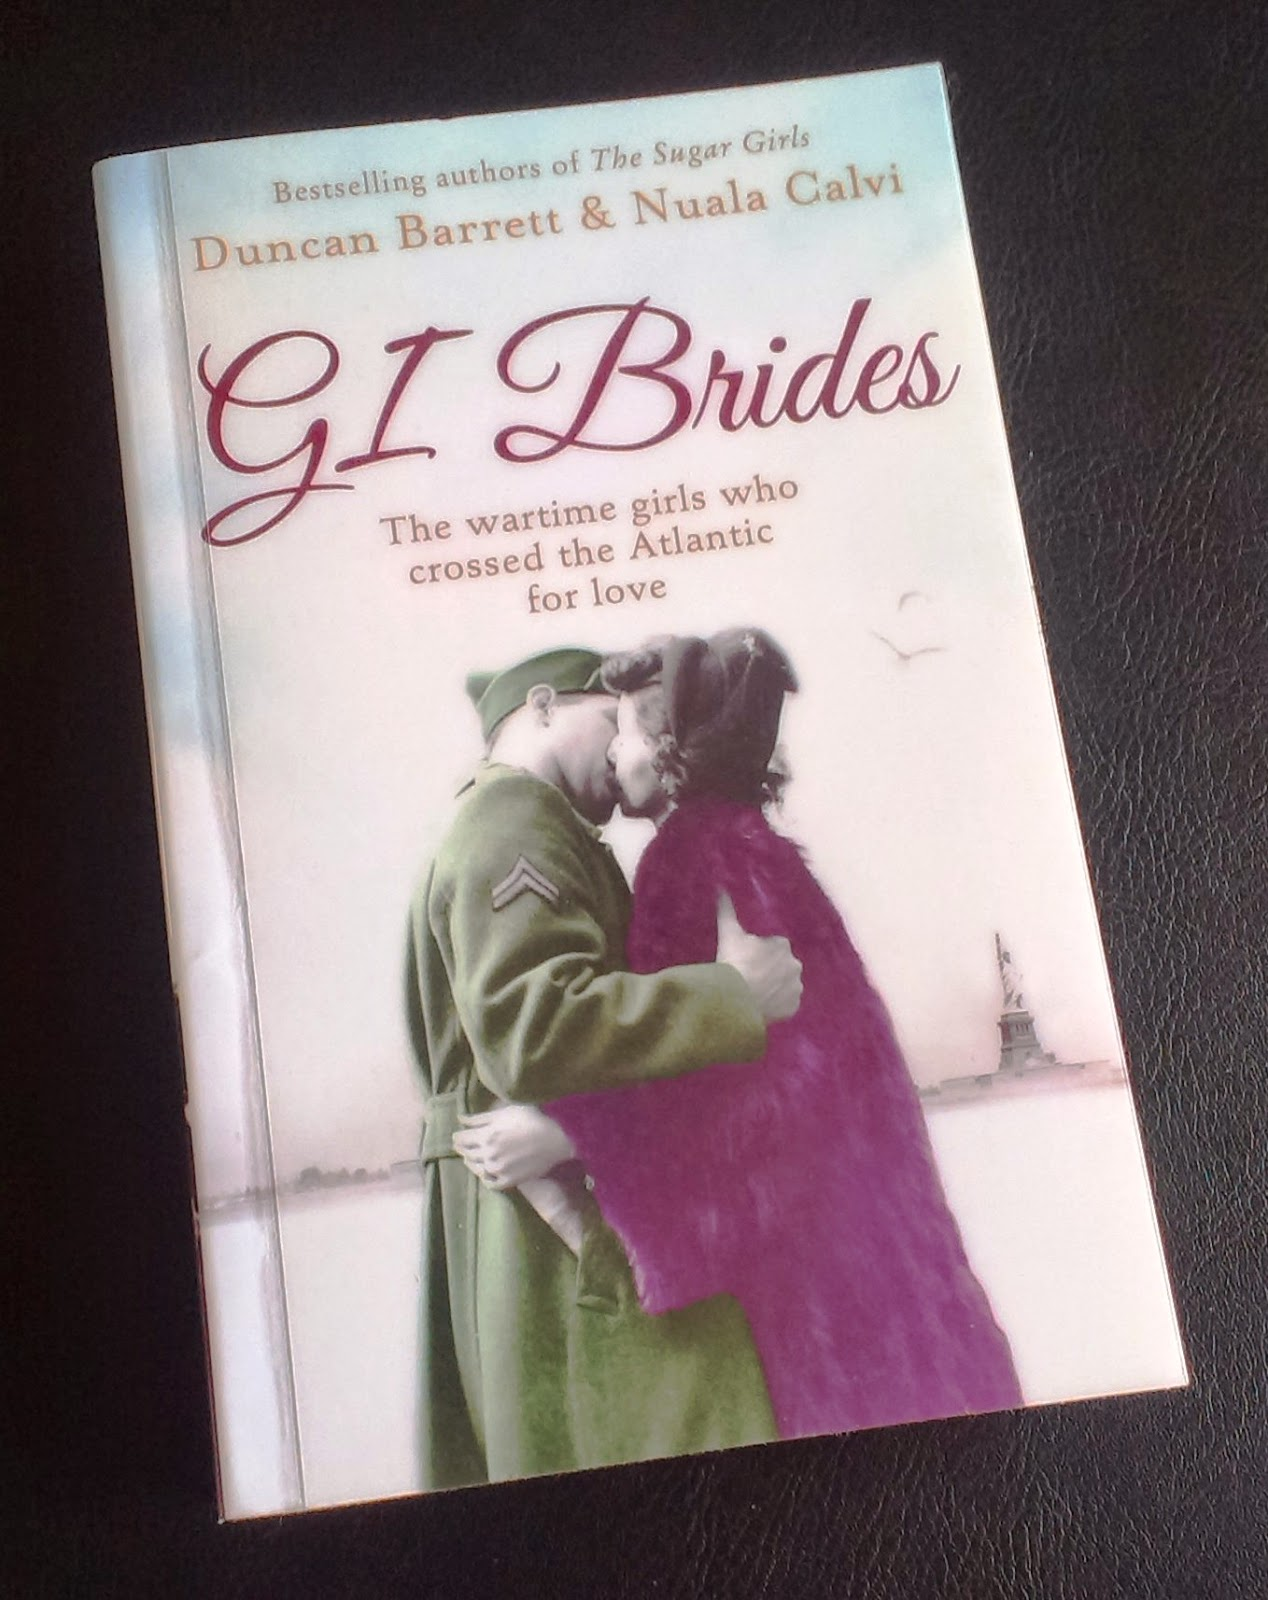 G.I. Brides by Duncan Barrett and Nuala Calvi